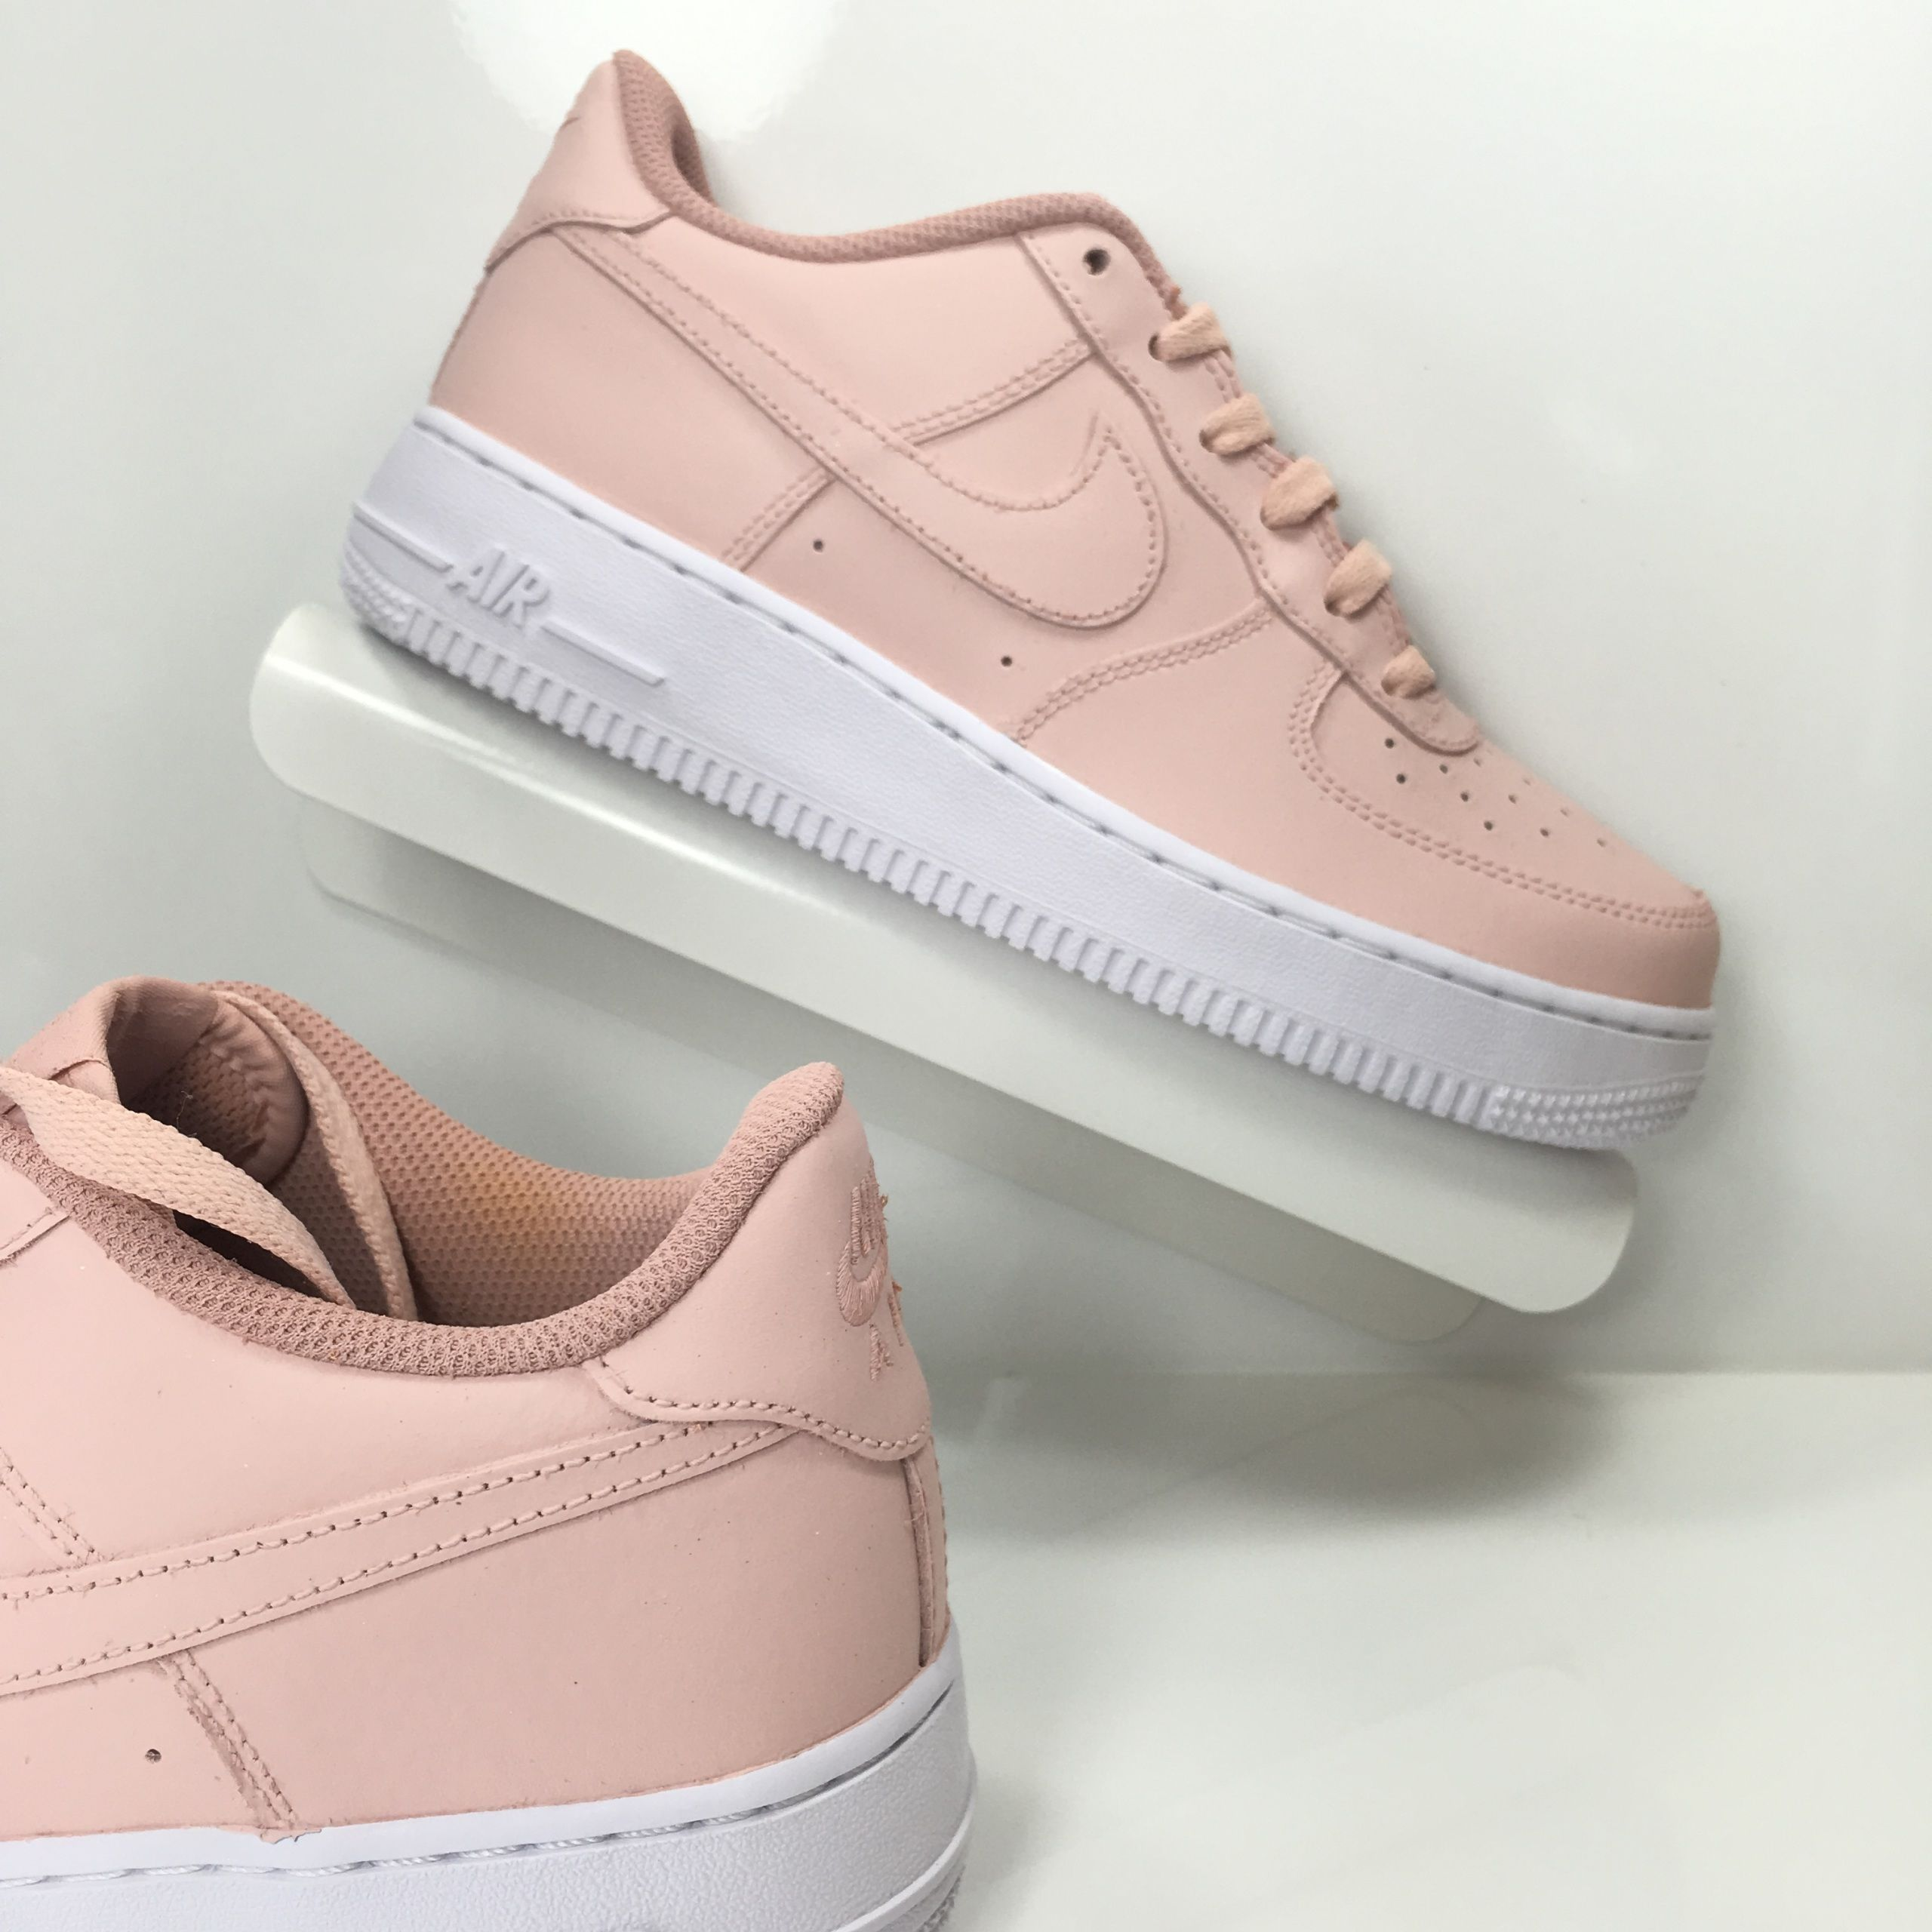 denmark nike air force 1 womens pink 6f3e7 b7ffd